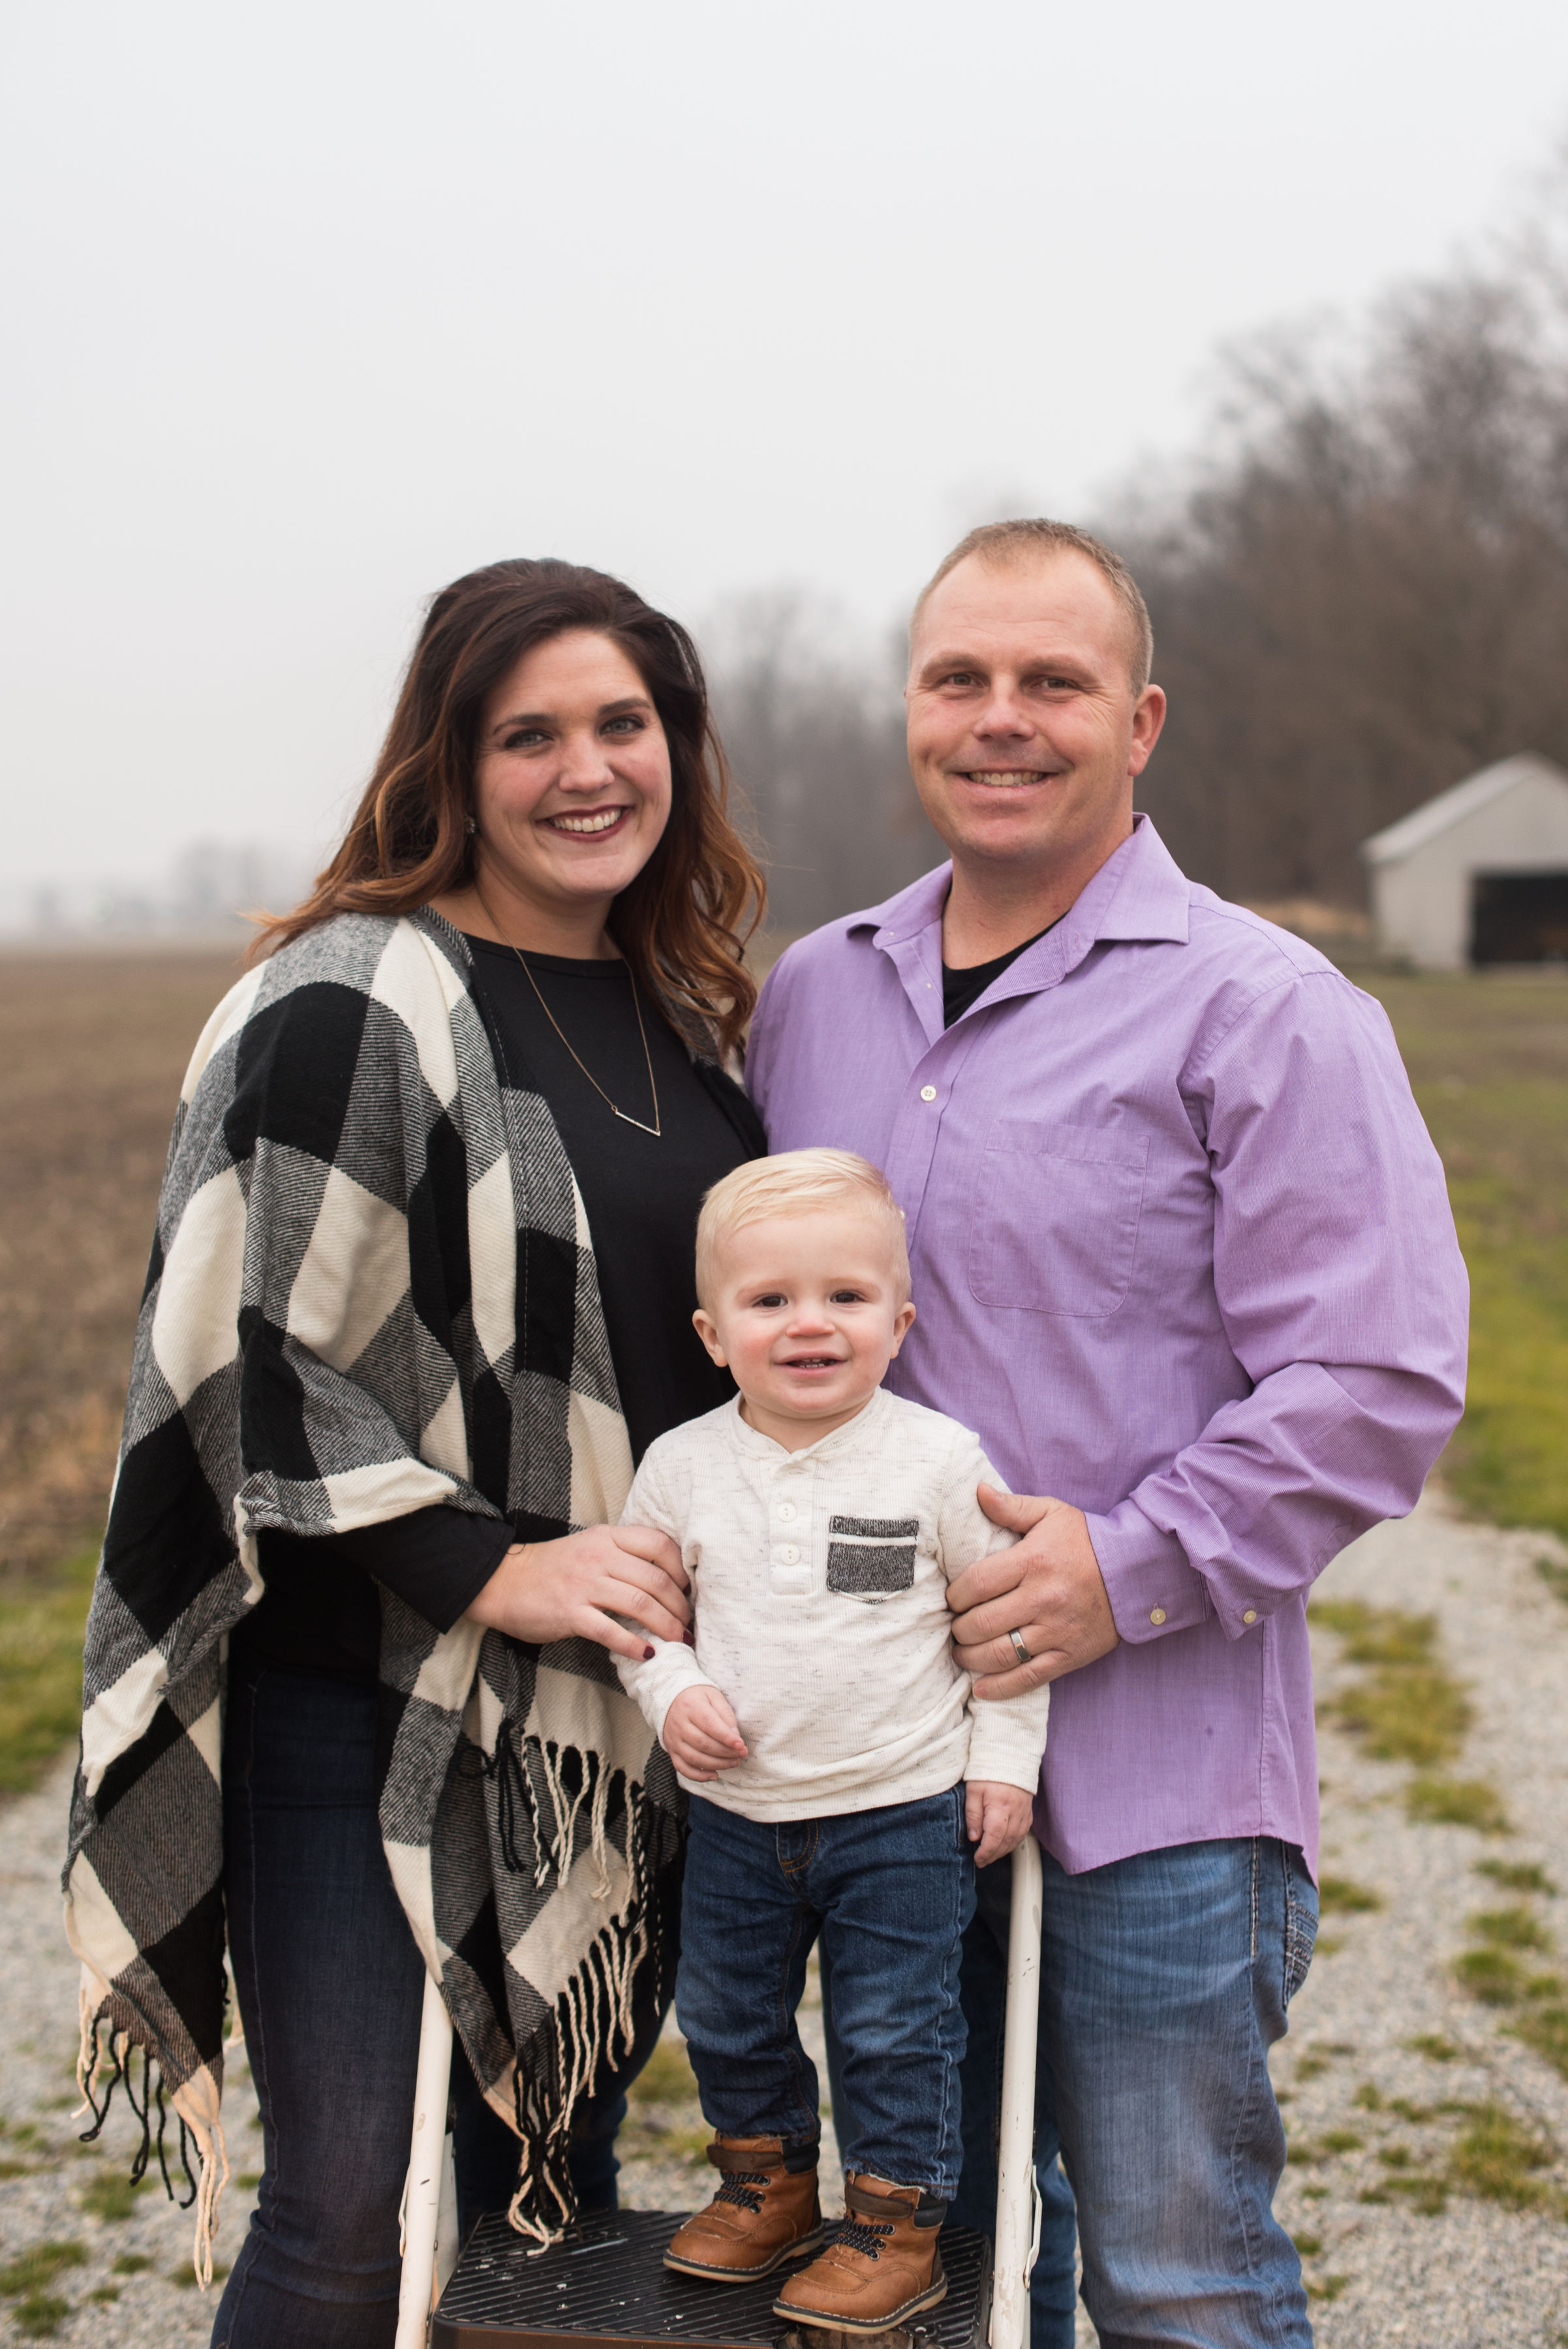 Brittani and Jake McEvoy and their son. Credit: Lindsey Whetstone Photography